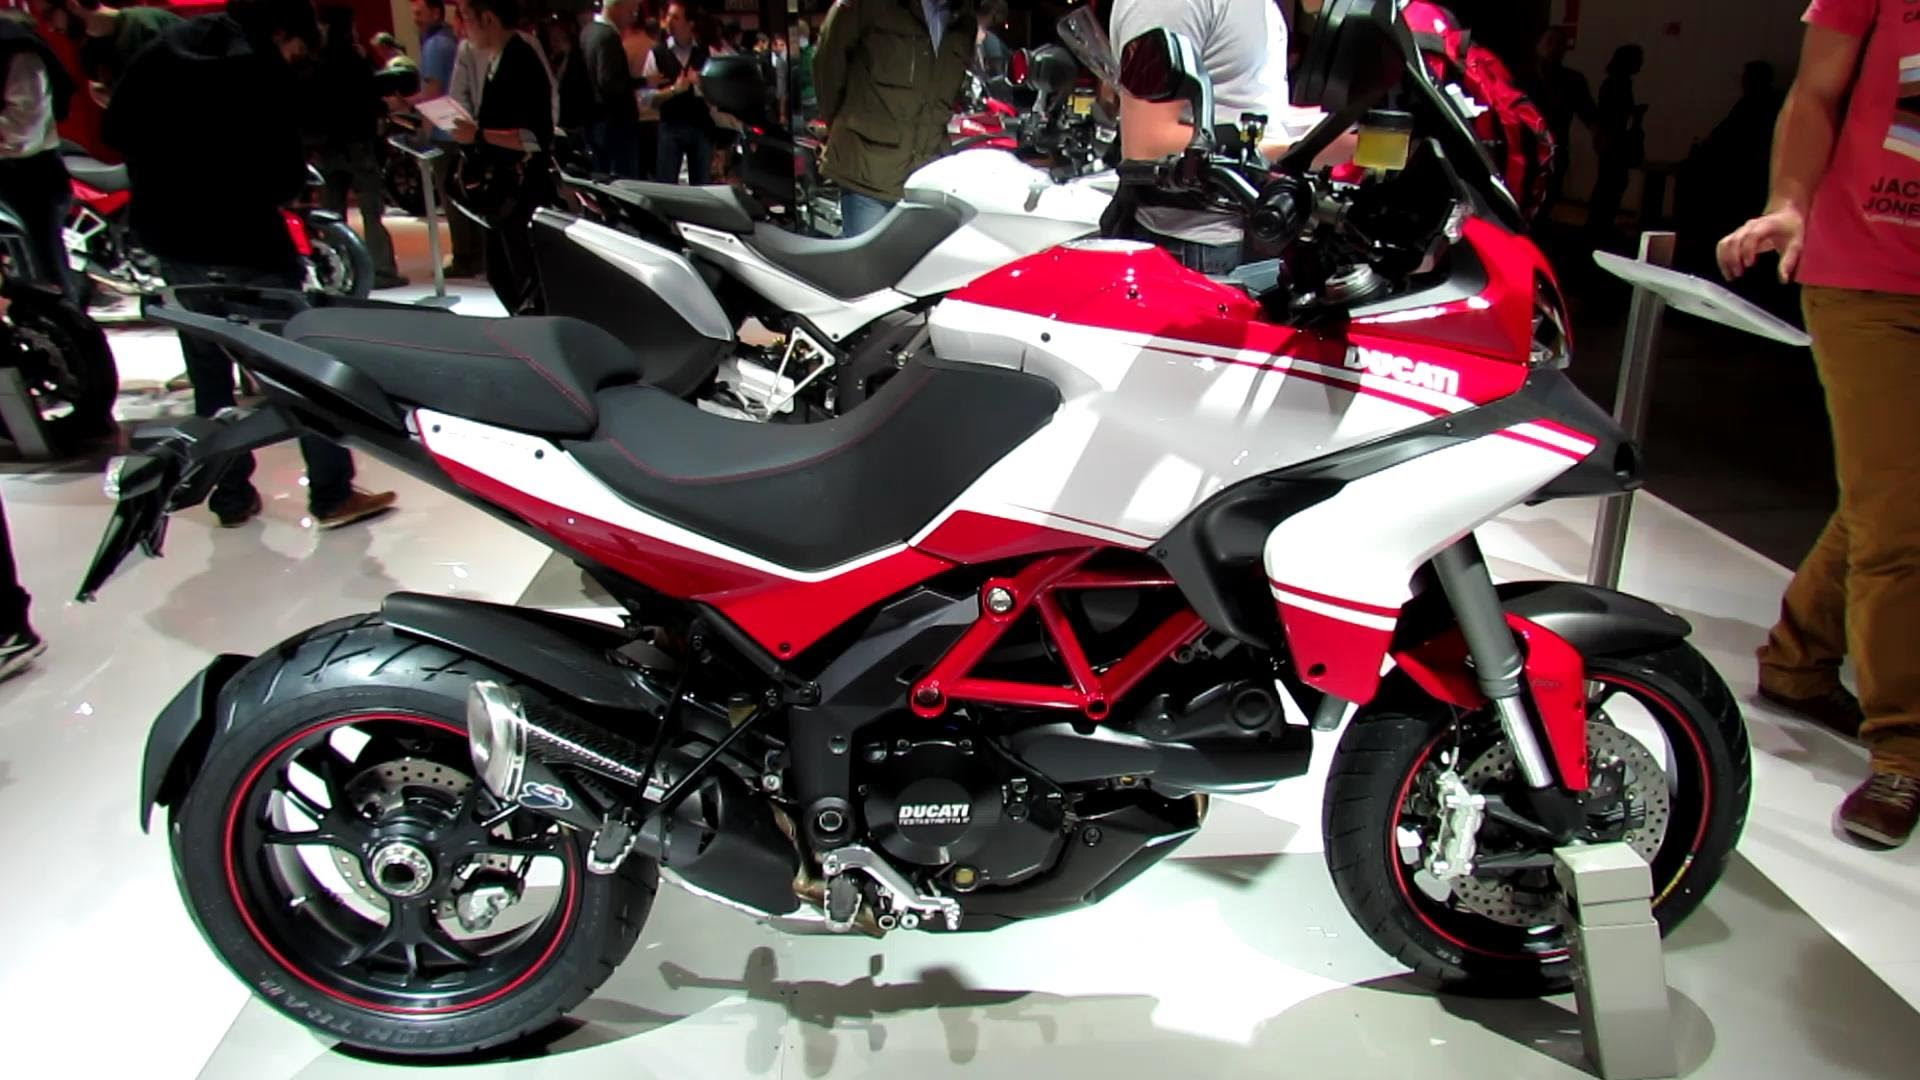 Ducati Multistrada 1200 S Pikes Peak Edition 2013 images #80026